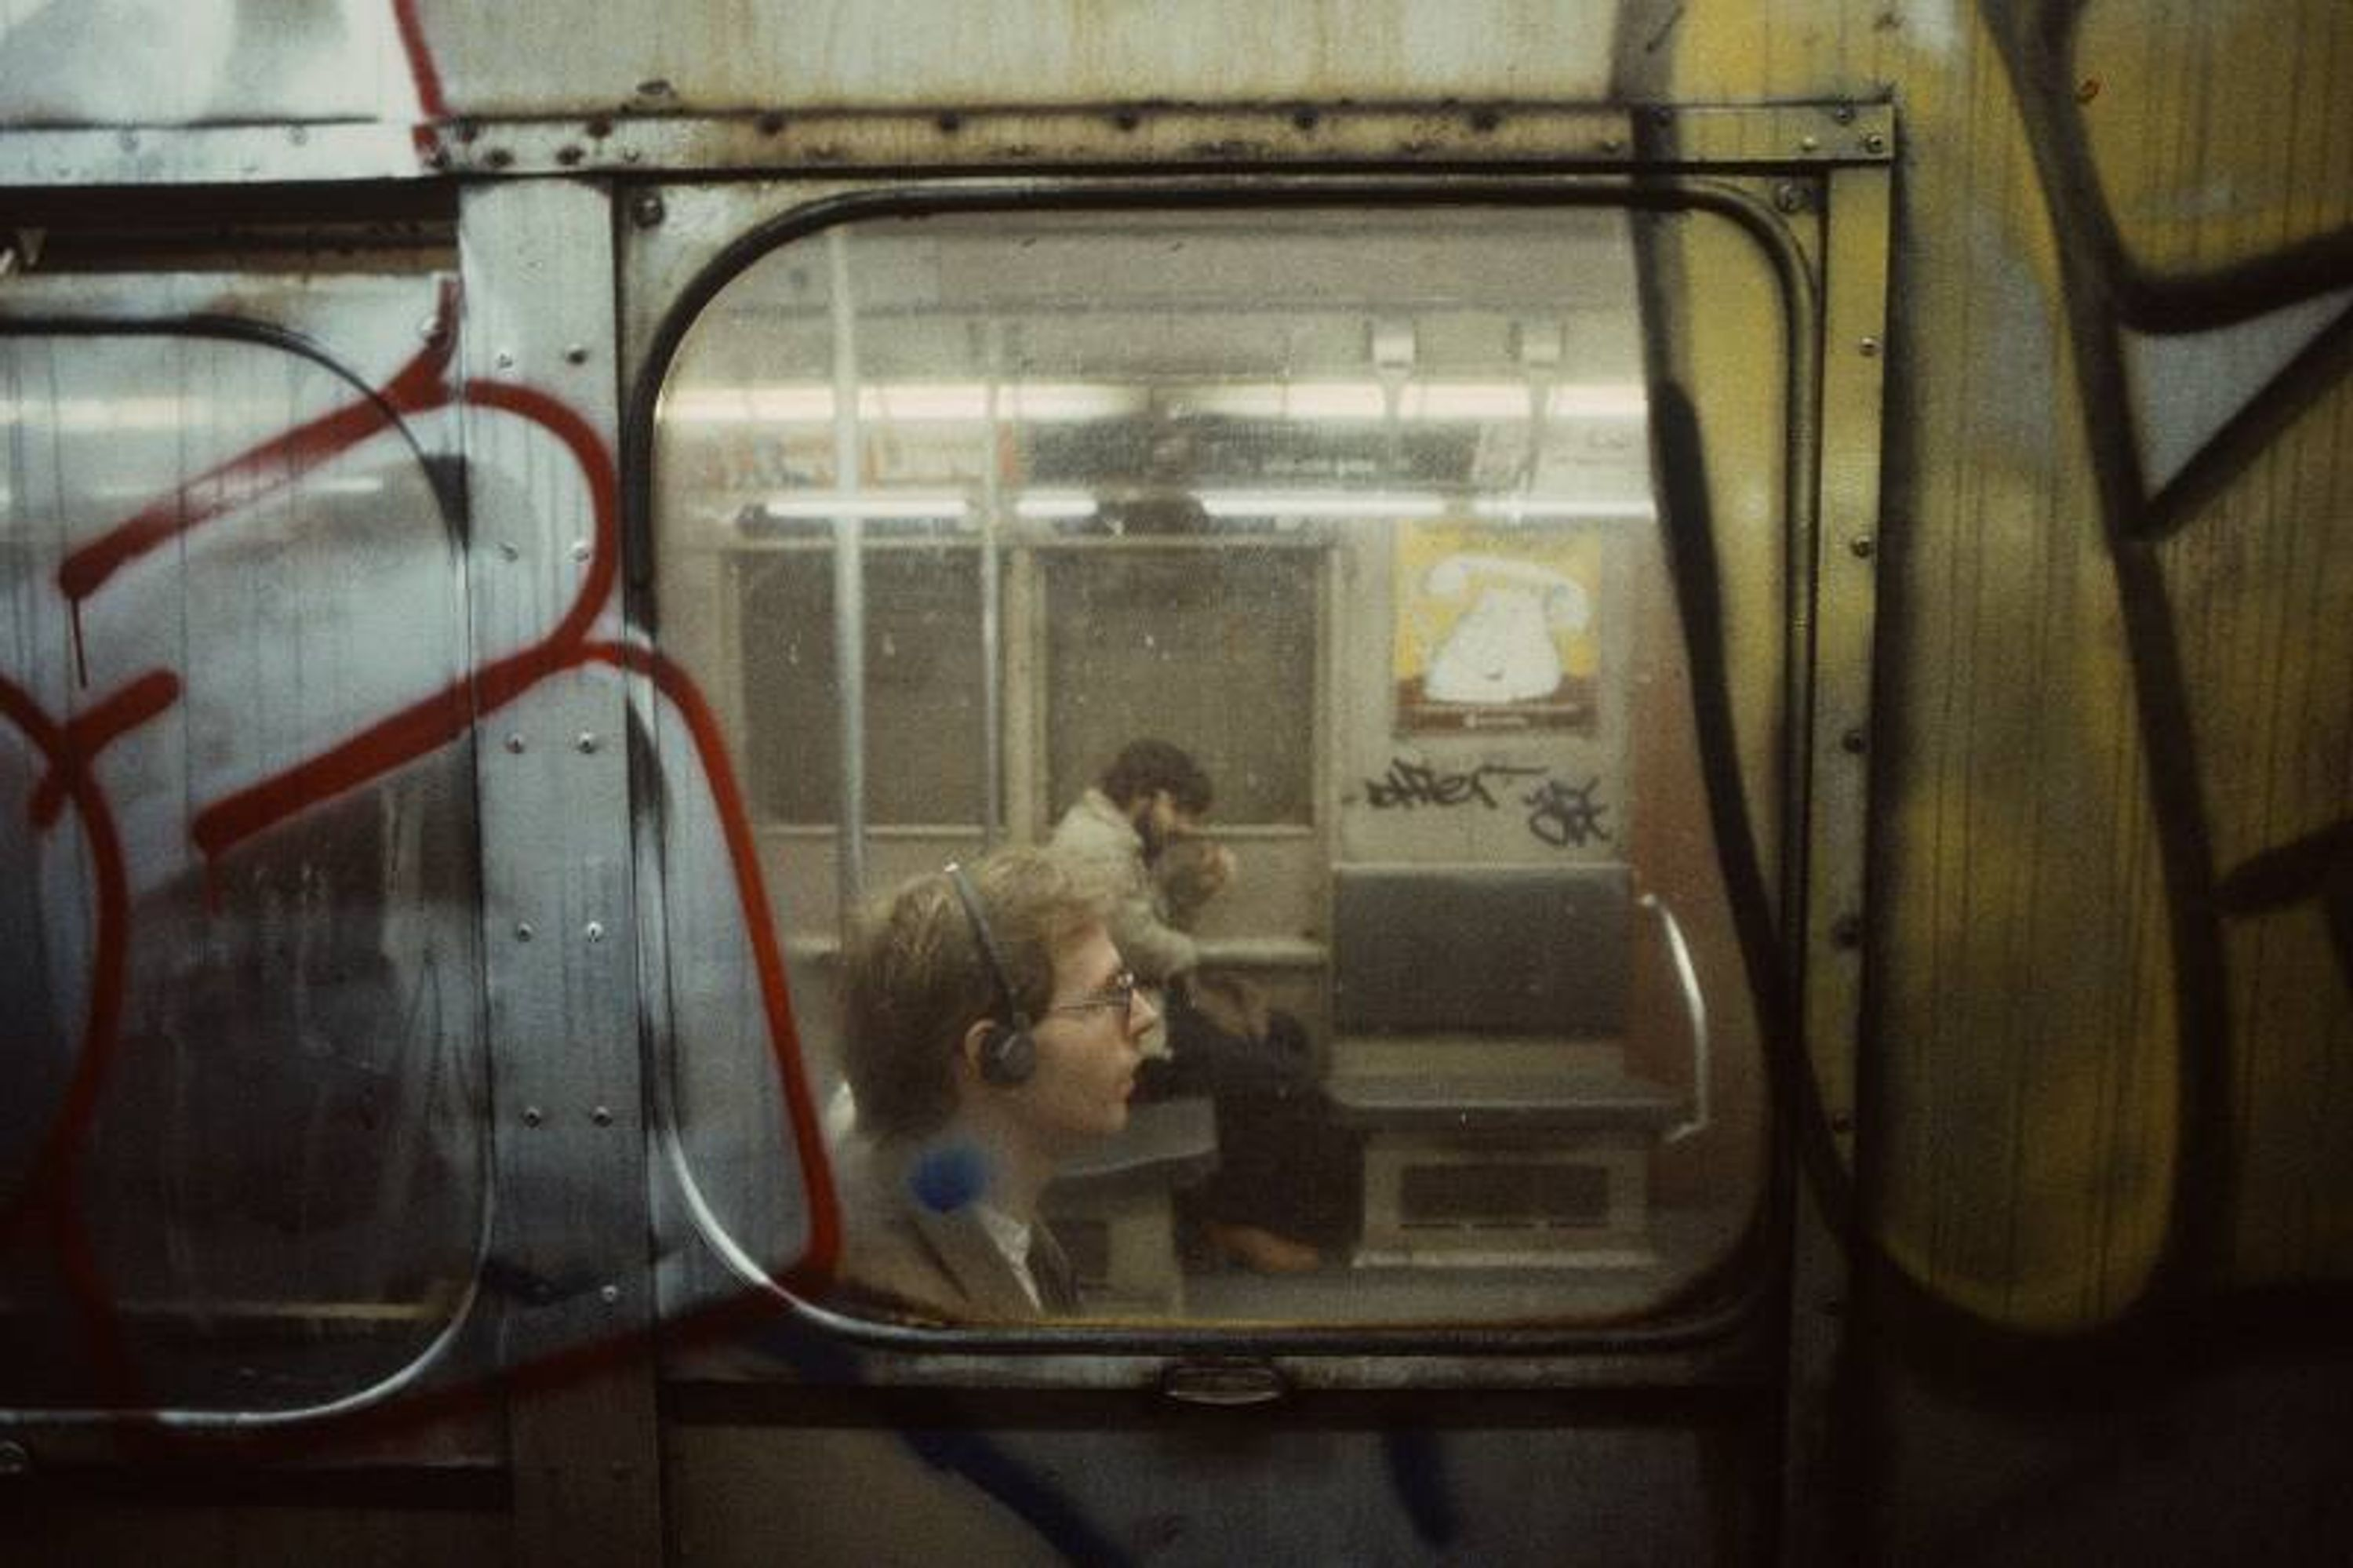 Photo from the subway of a person in another subway car listening to a walkman.